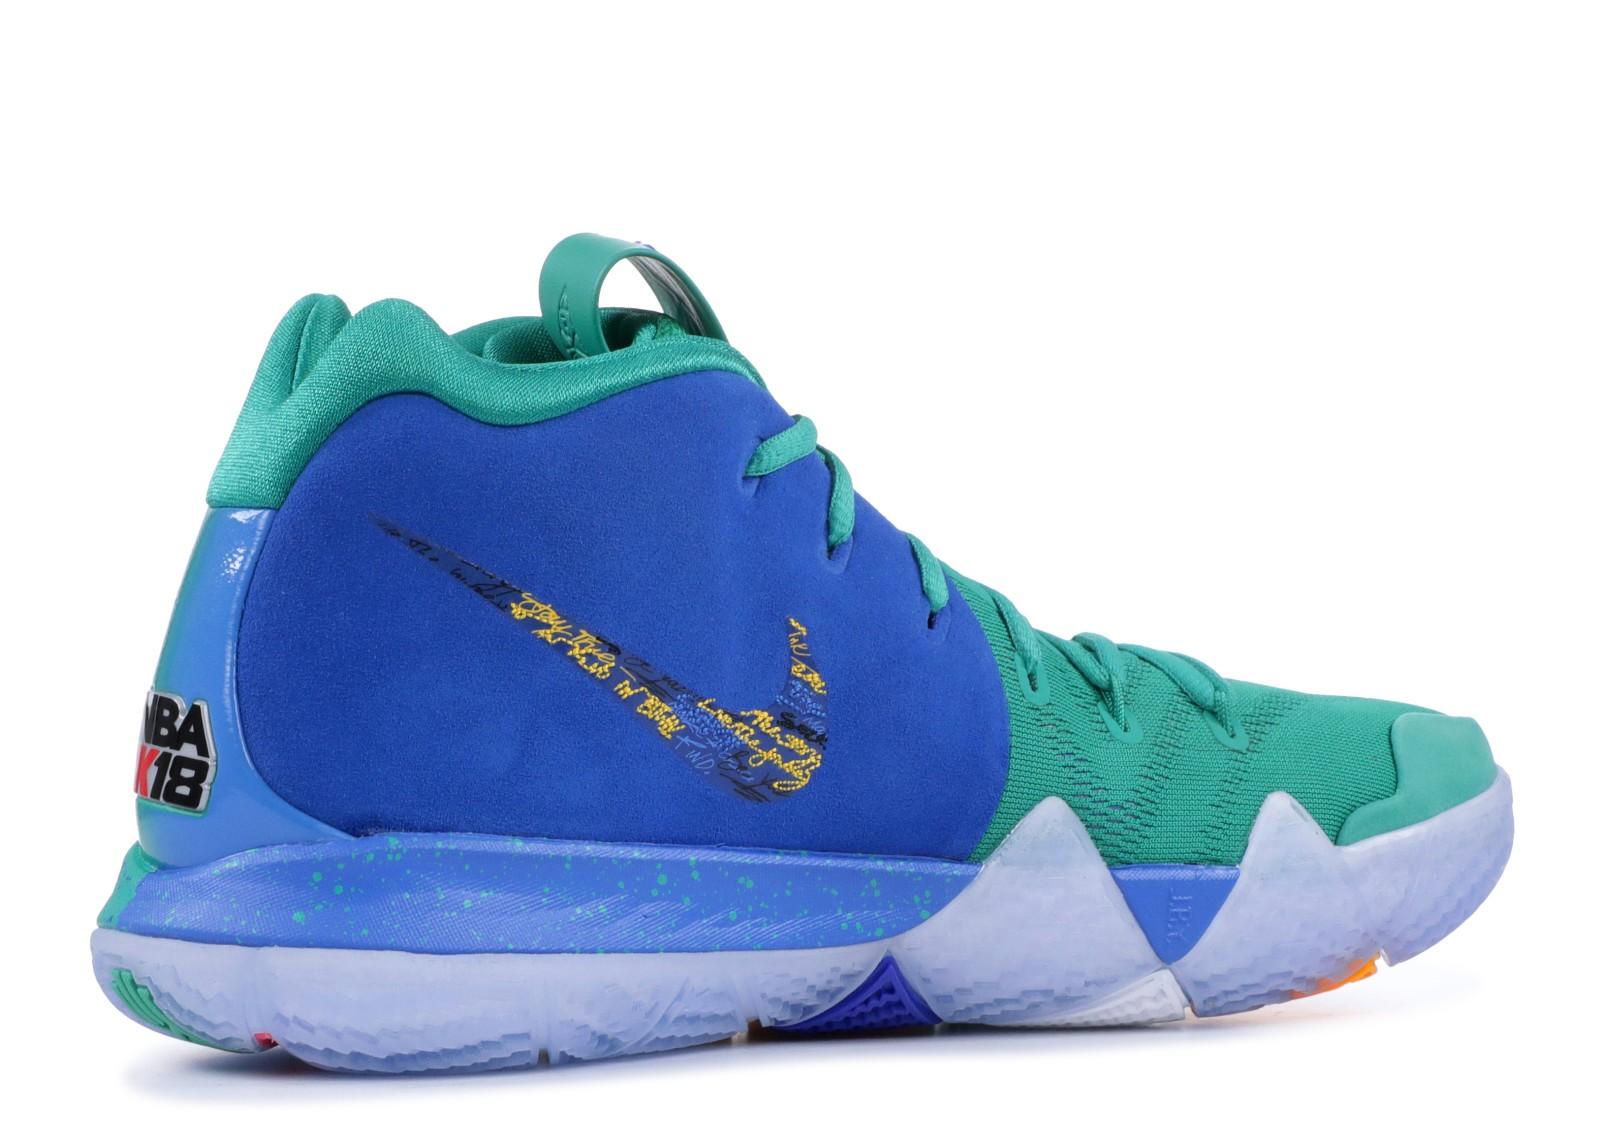 05a28565e416 ... Kyrie 4 NBA 2k18 Friends And Family University Green Blue 860844-868 ...